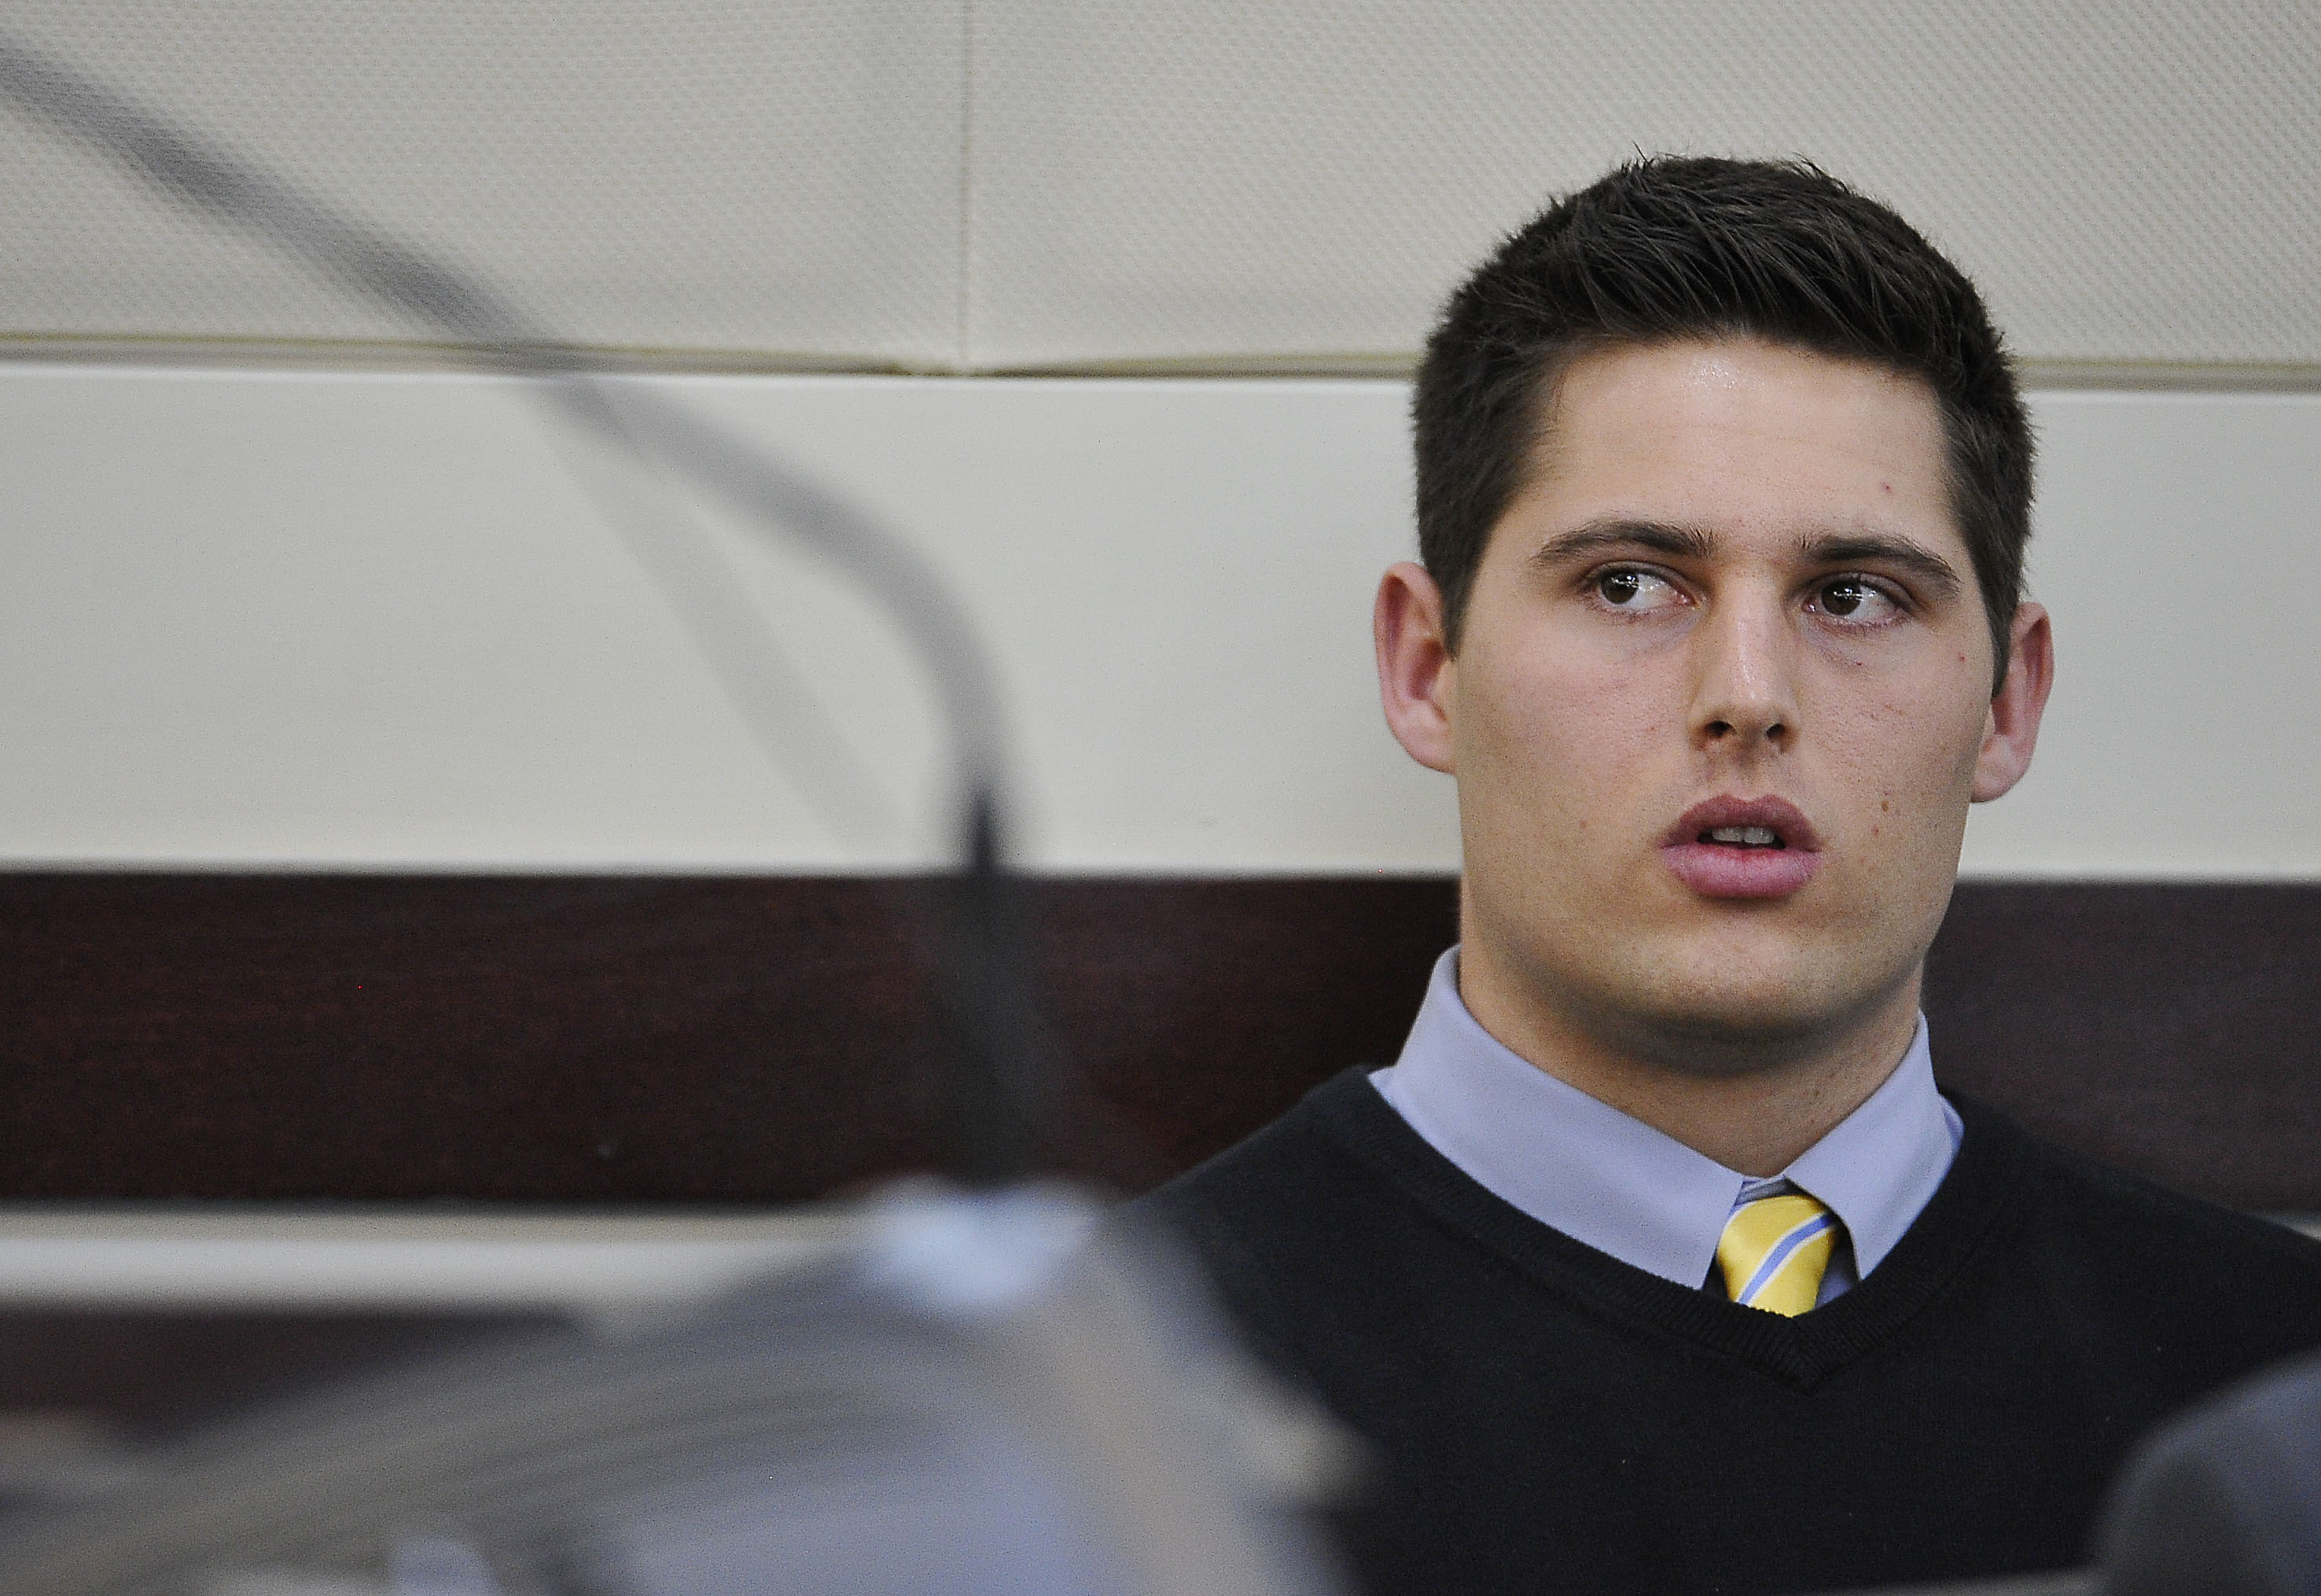 Defendant Brandon Vandenburg listens as his attorney Fletcher Long argues for acquittal during the his trial Monday, Jan. 26, 2015, in Nashville, Tenn. Tenn. Former Vanderbilt football players Vandenburg and Cory Batey are standing trial on five counts of aggravated rape and two counts of aggravated sexual battery. (AP Photo/Larry McCormack, Pool